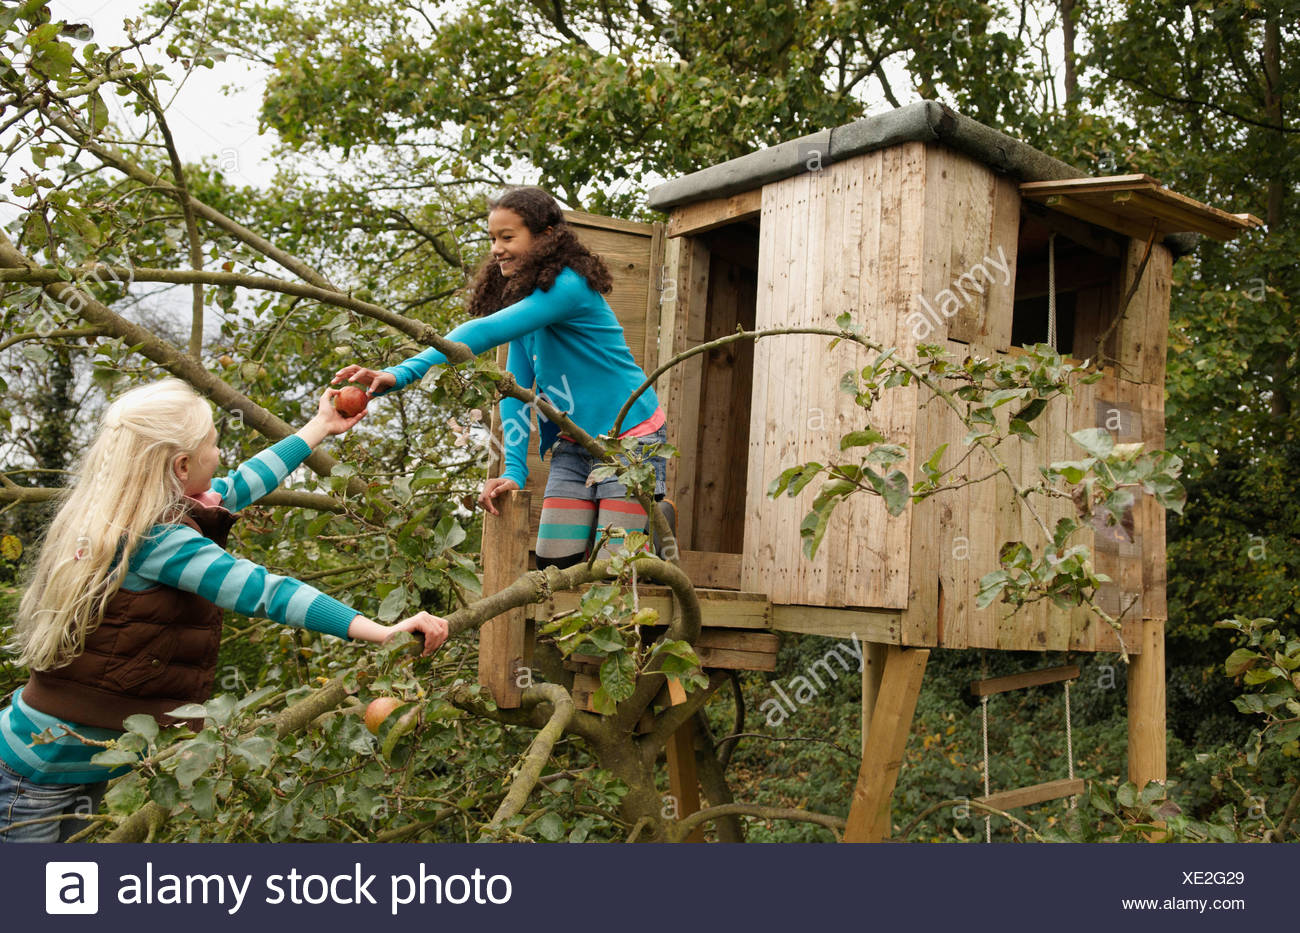 Girl in tree passing apple to friend - Stock Image